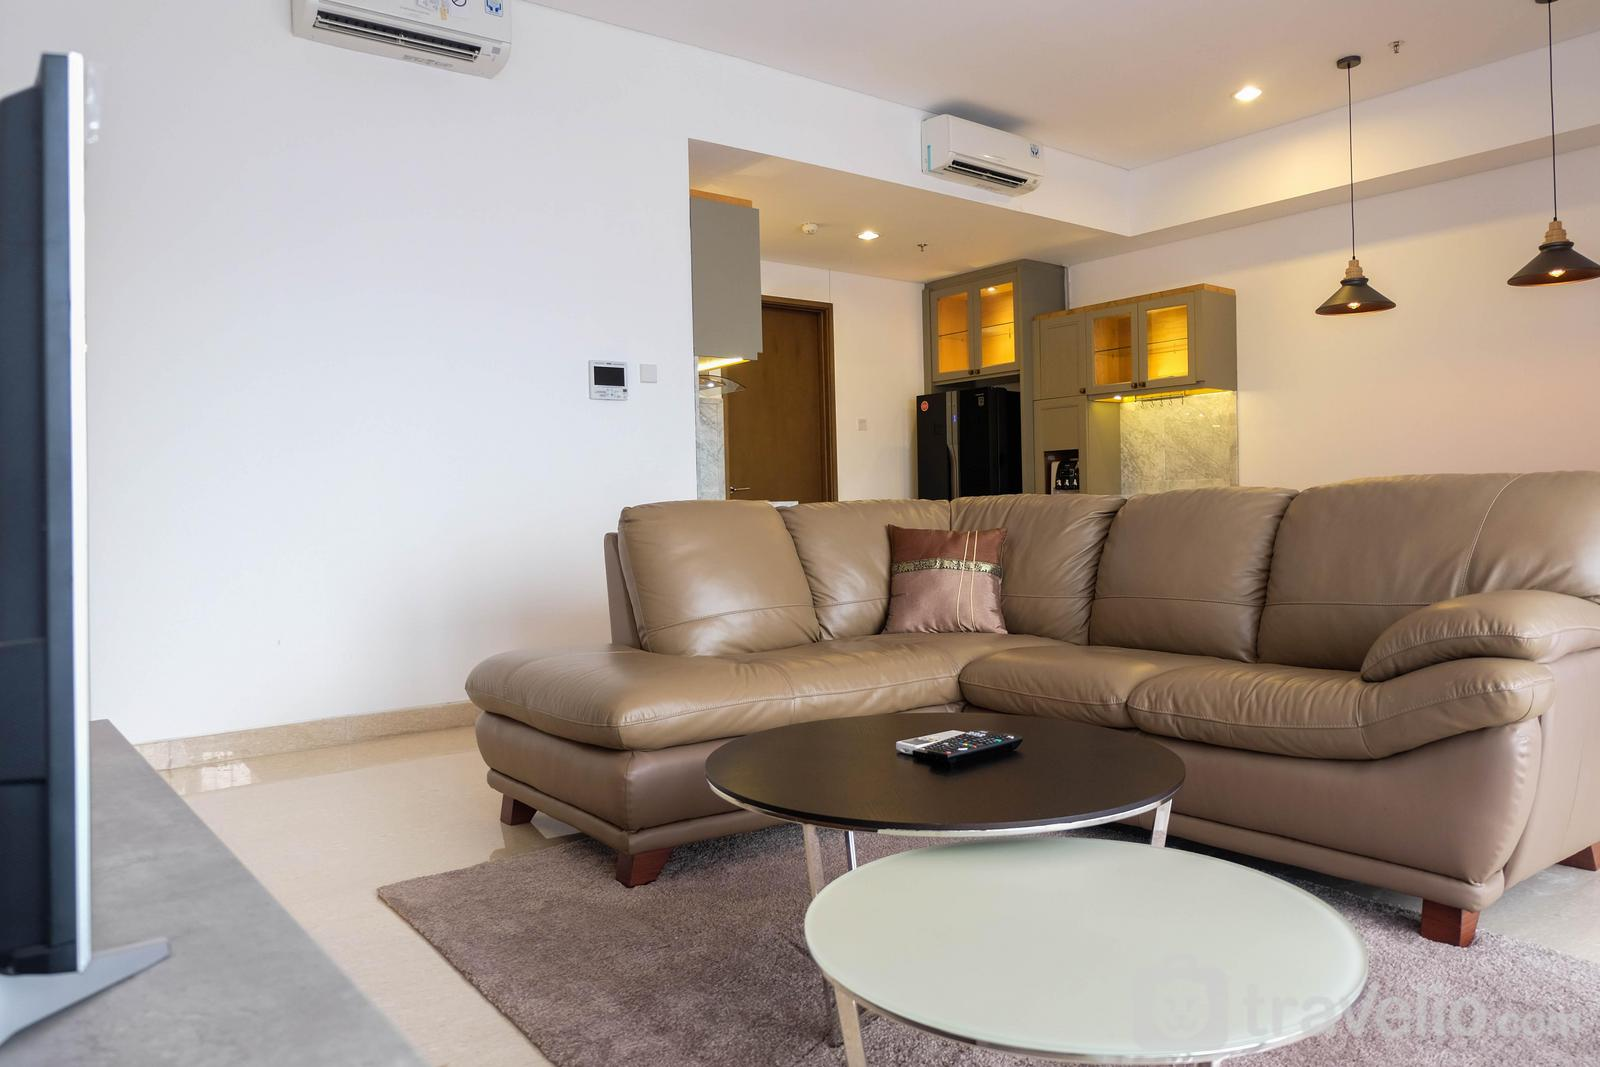 Apartemen 1 Park Avenue - Spacious 2BR Apartment at 1 Park Avenue By Travelio